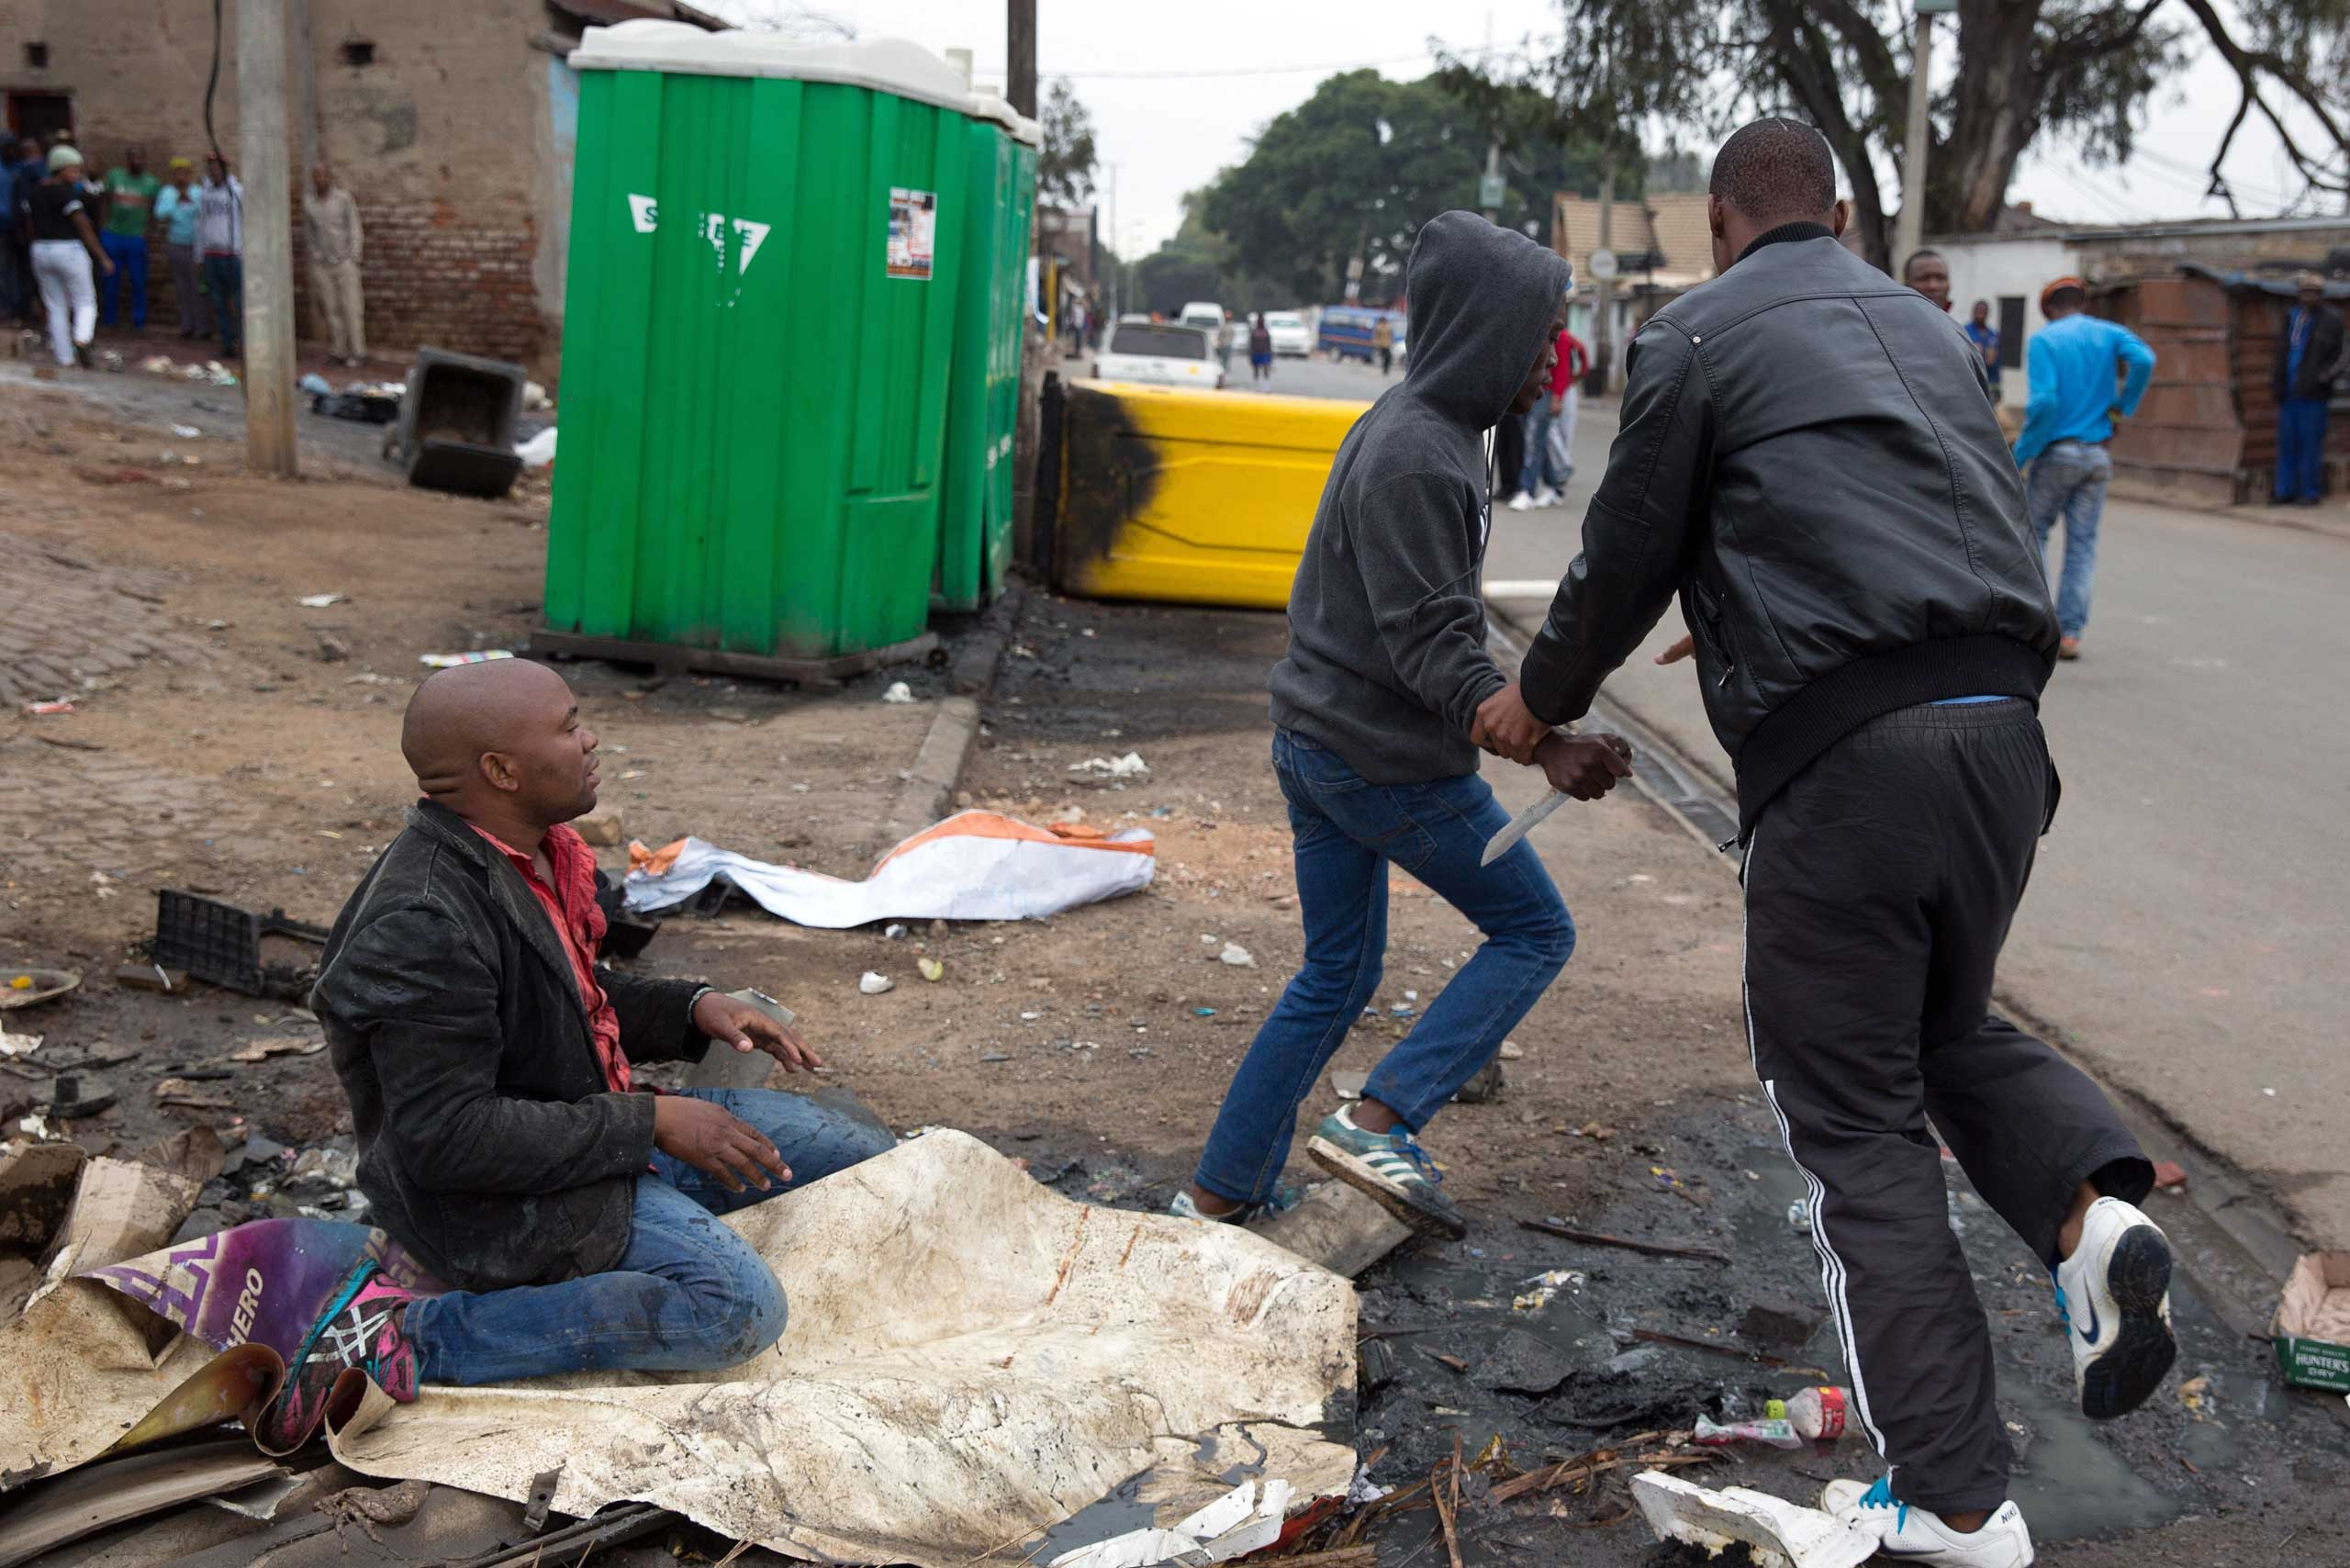 Sithole after being attacked by men in Alexandra township during anti-immigrant violence in Johannesburg on April 18, 2015.